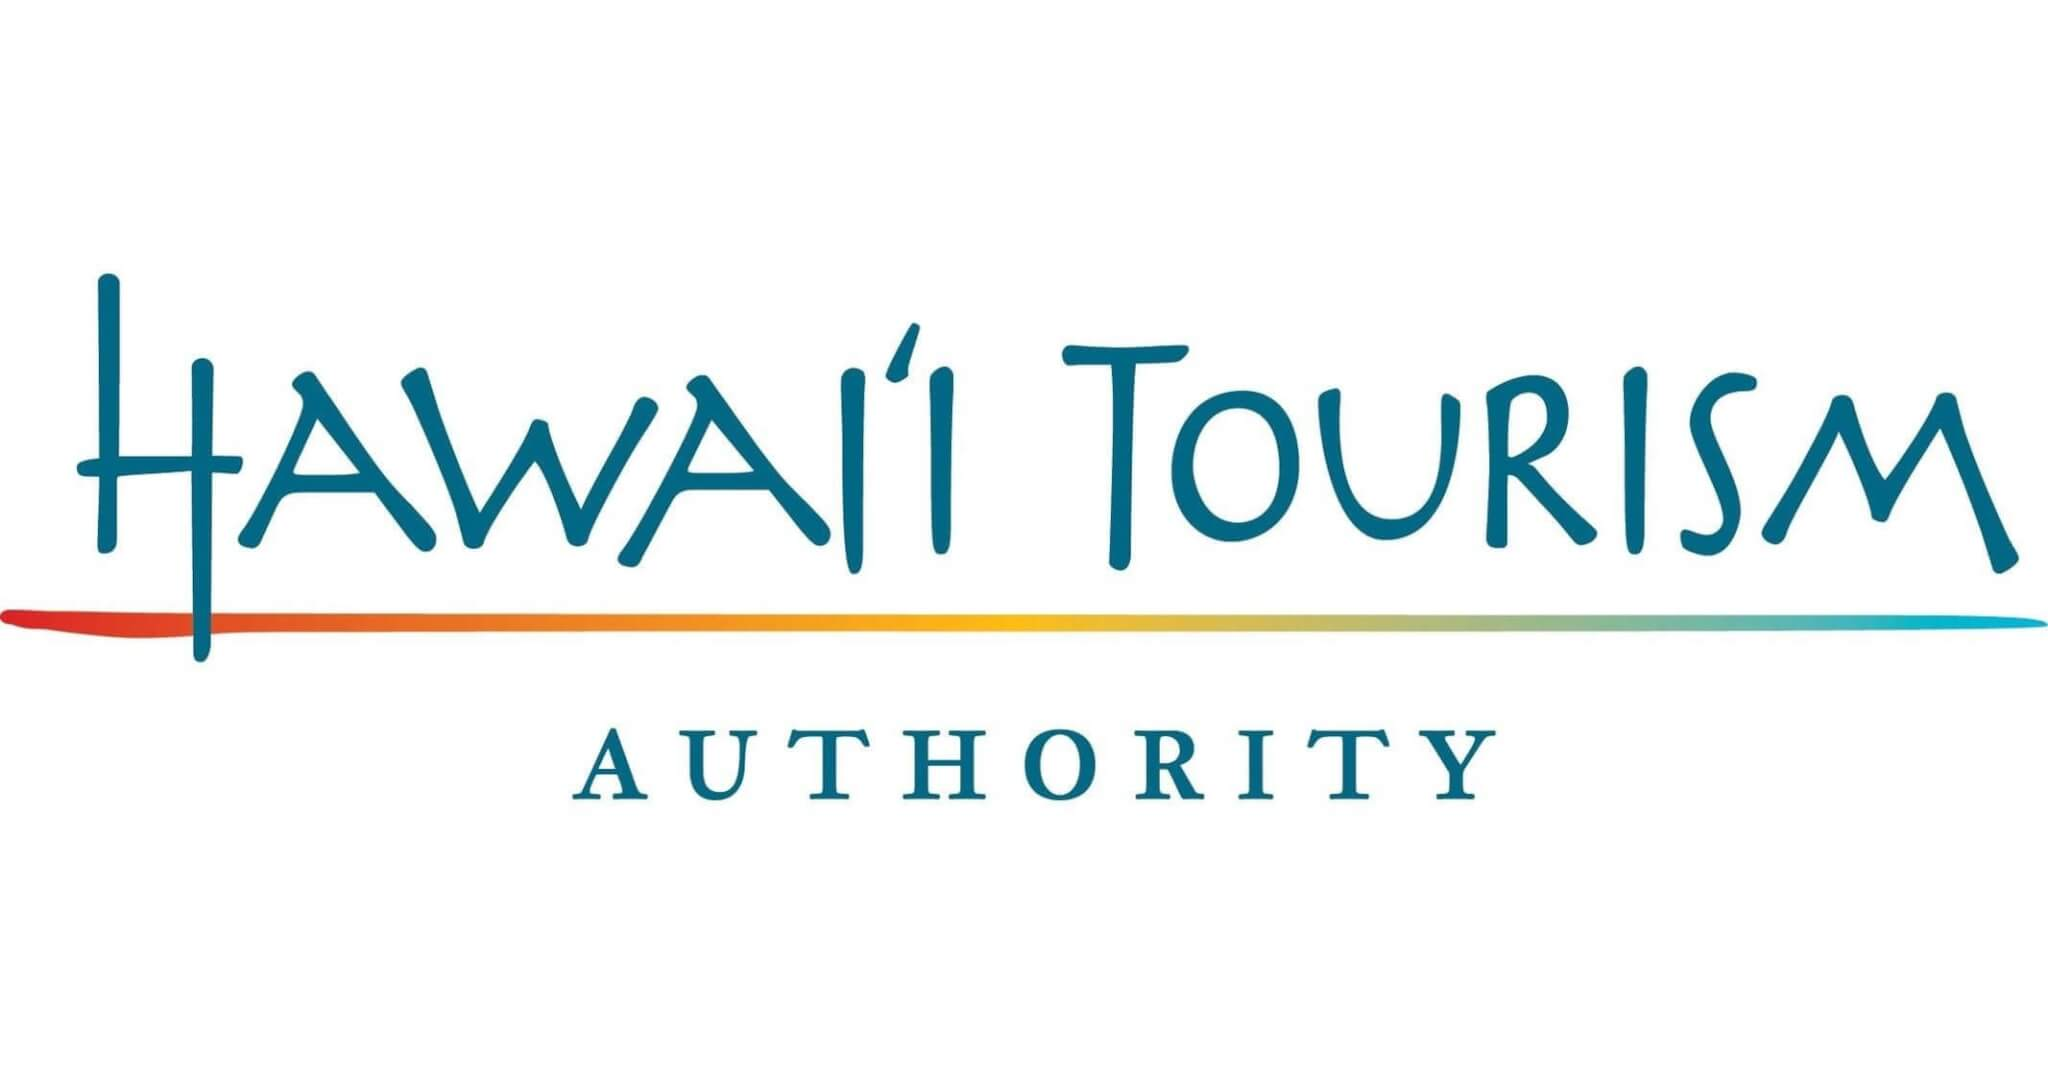 Hawaii Tourism Authority begins search for new President and CEO